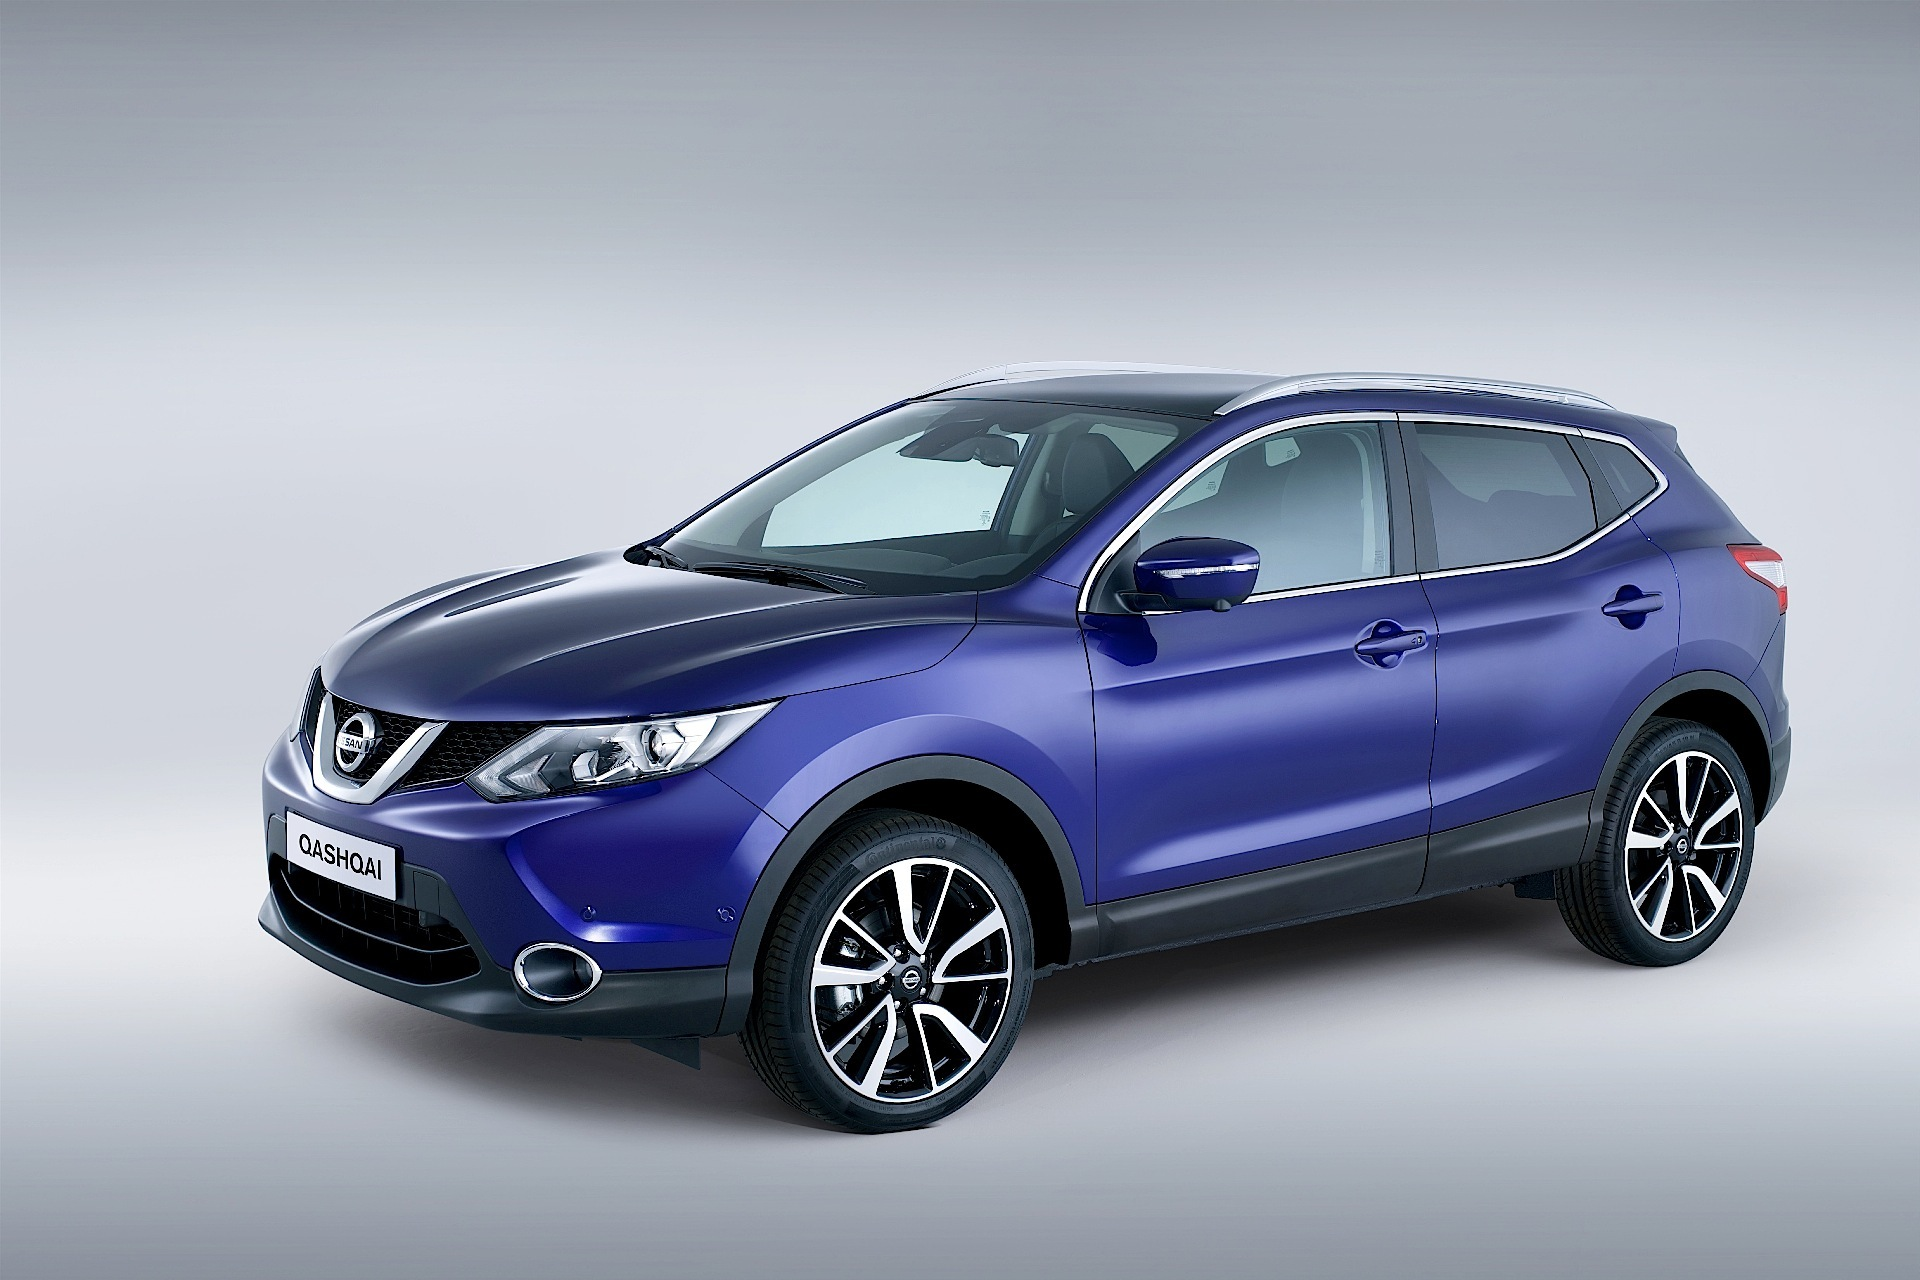 nissan qashqai specs photos 2013 2014 2015 2016. Black Bedroom Furniture Sets. Home Design Ideas